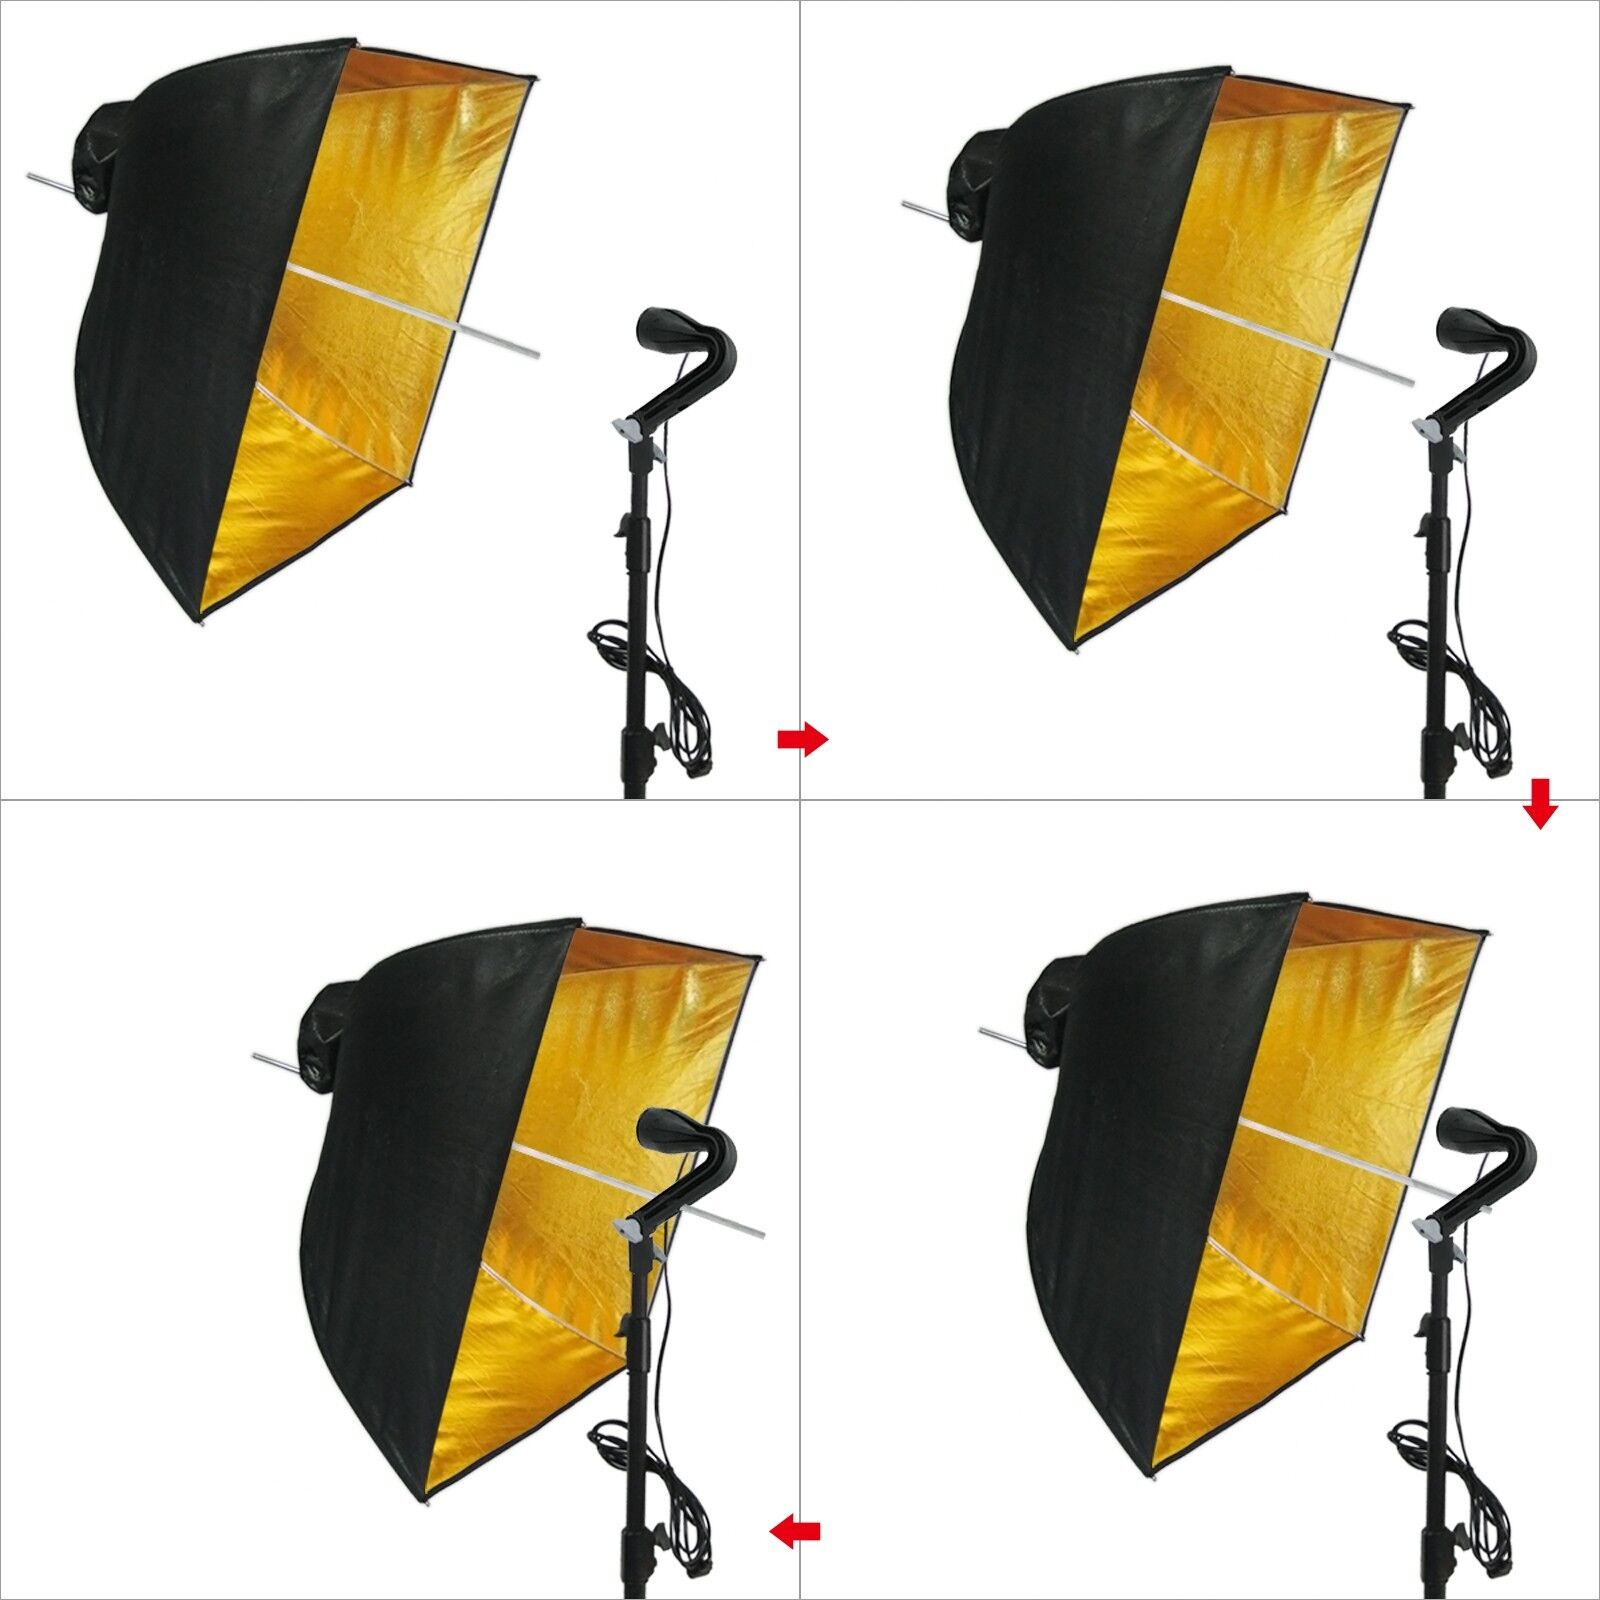 Reflective Umbrella Softbox: 《US SELLER》LINCO Square Gold Photography Studio Reflective